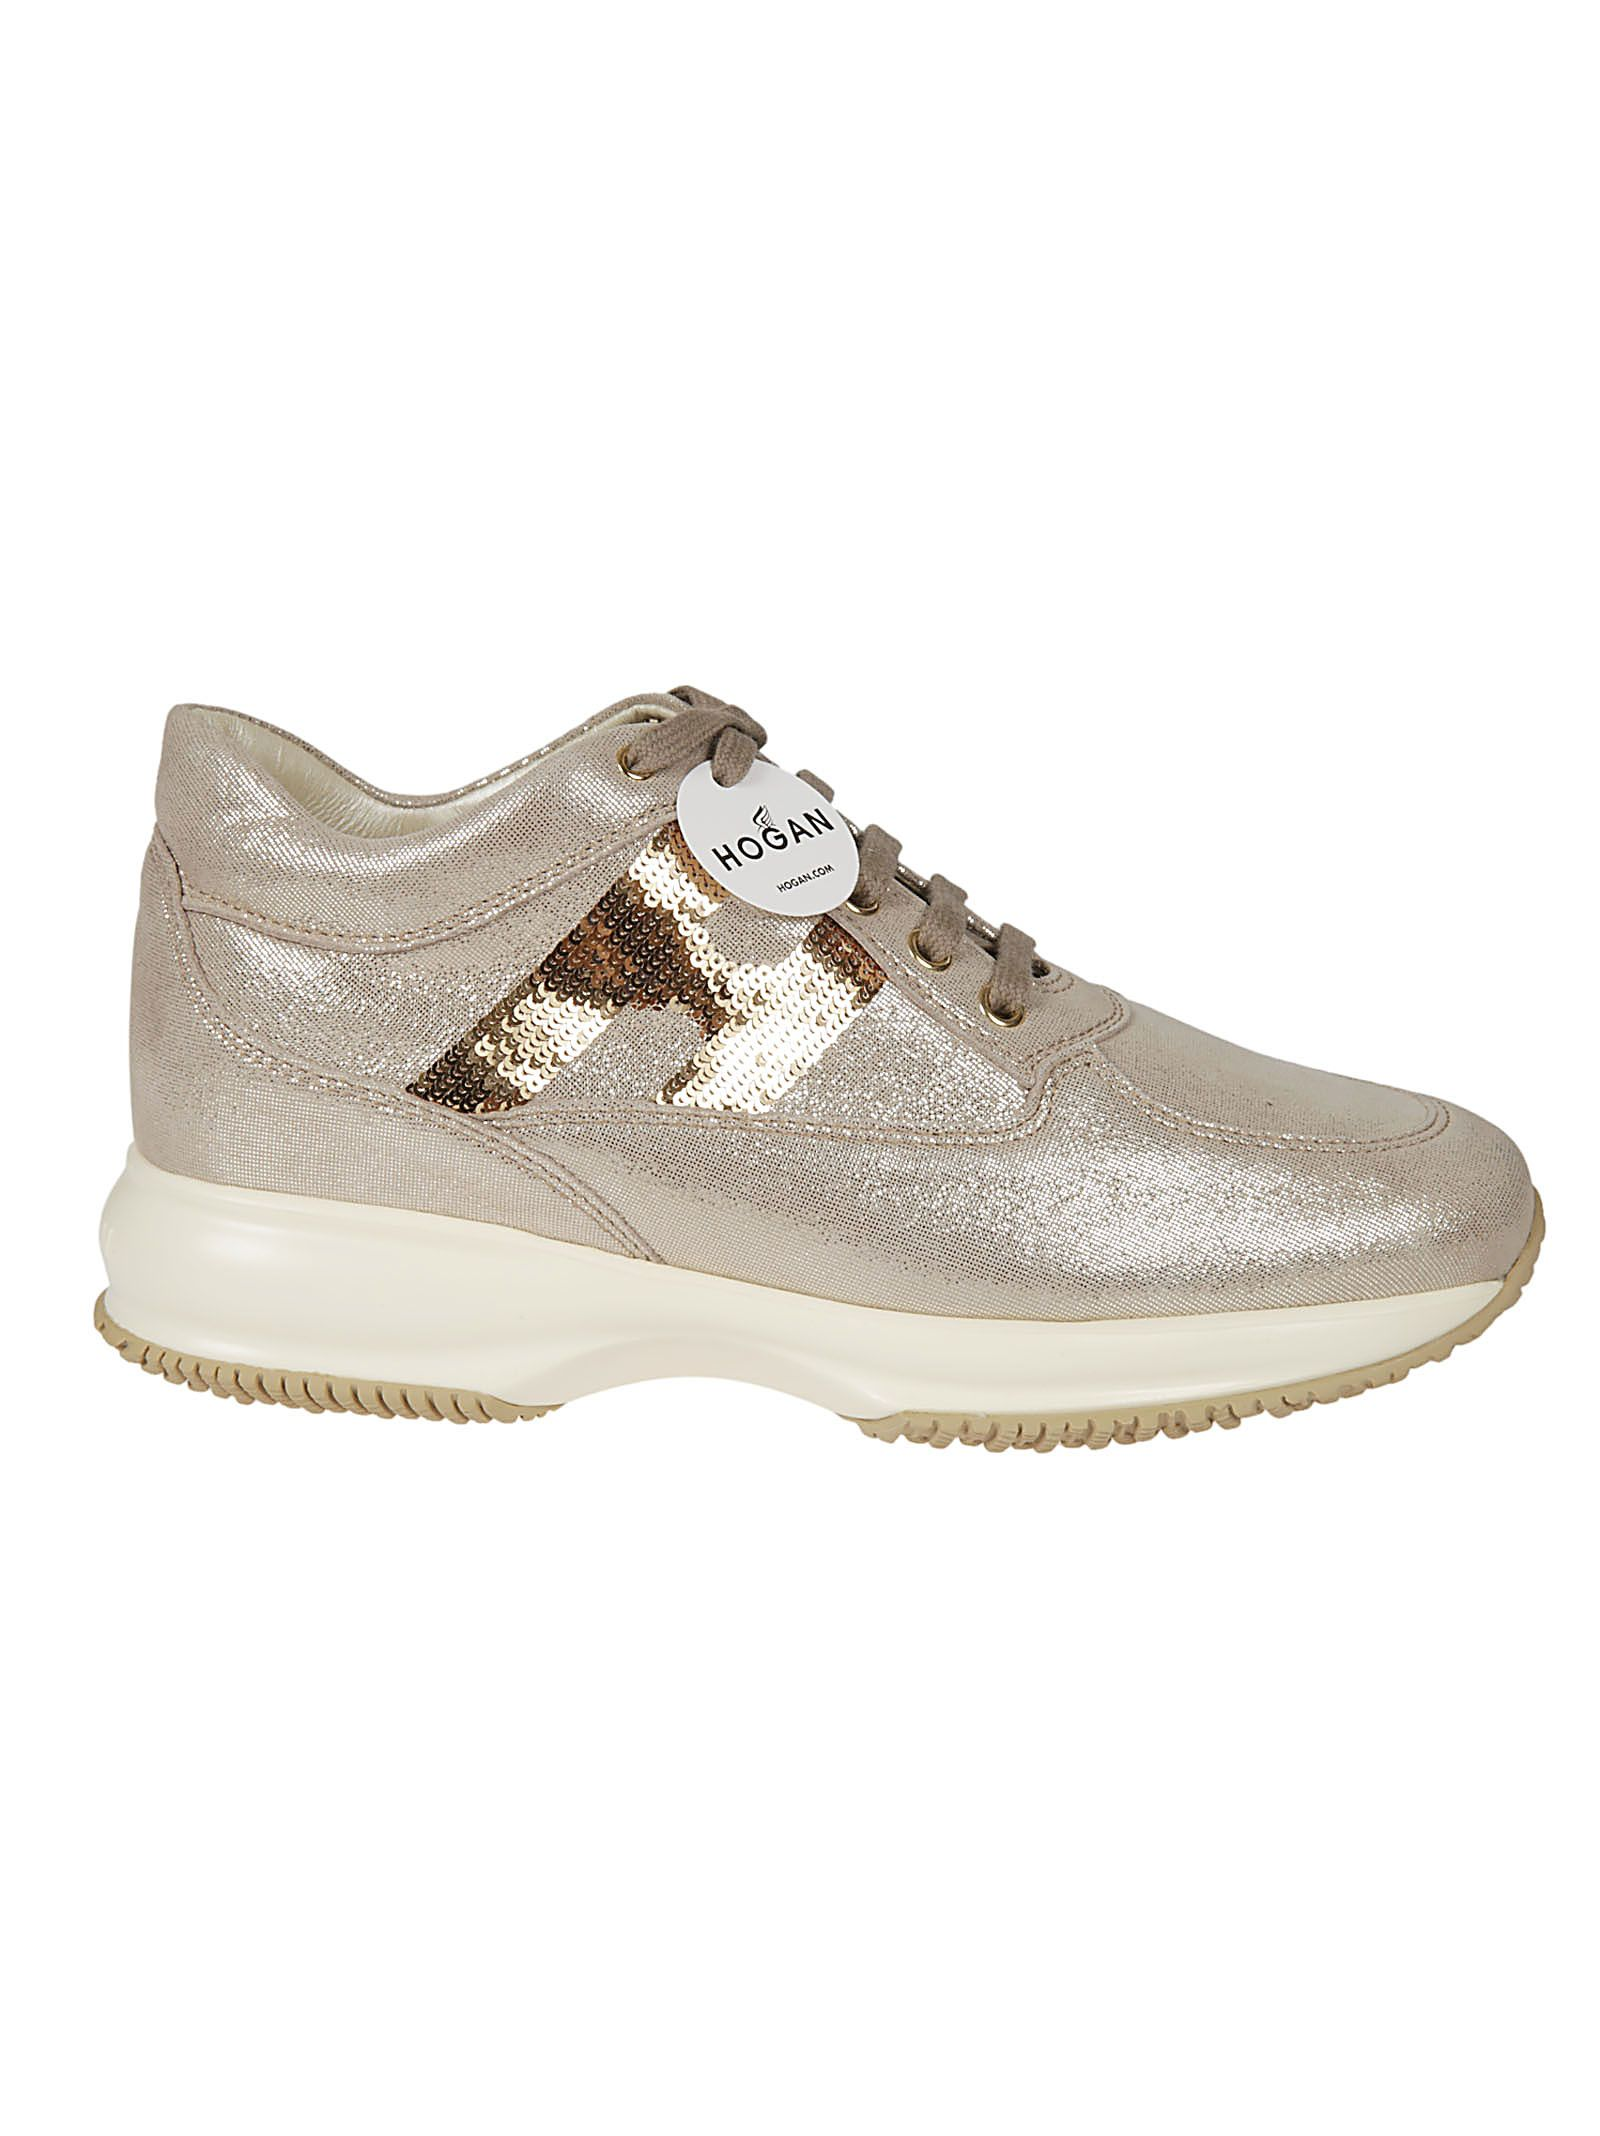 HOGAN SEQUIN EMBELLISHED SNEAKERS